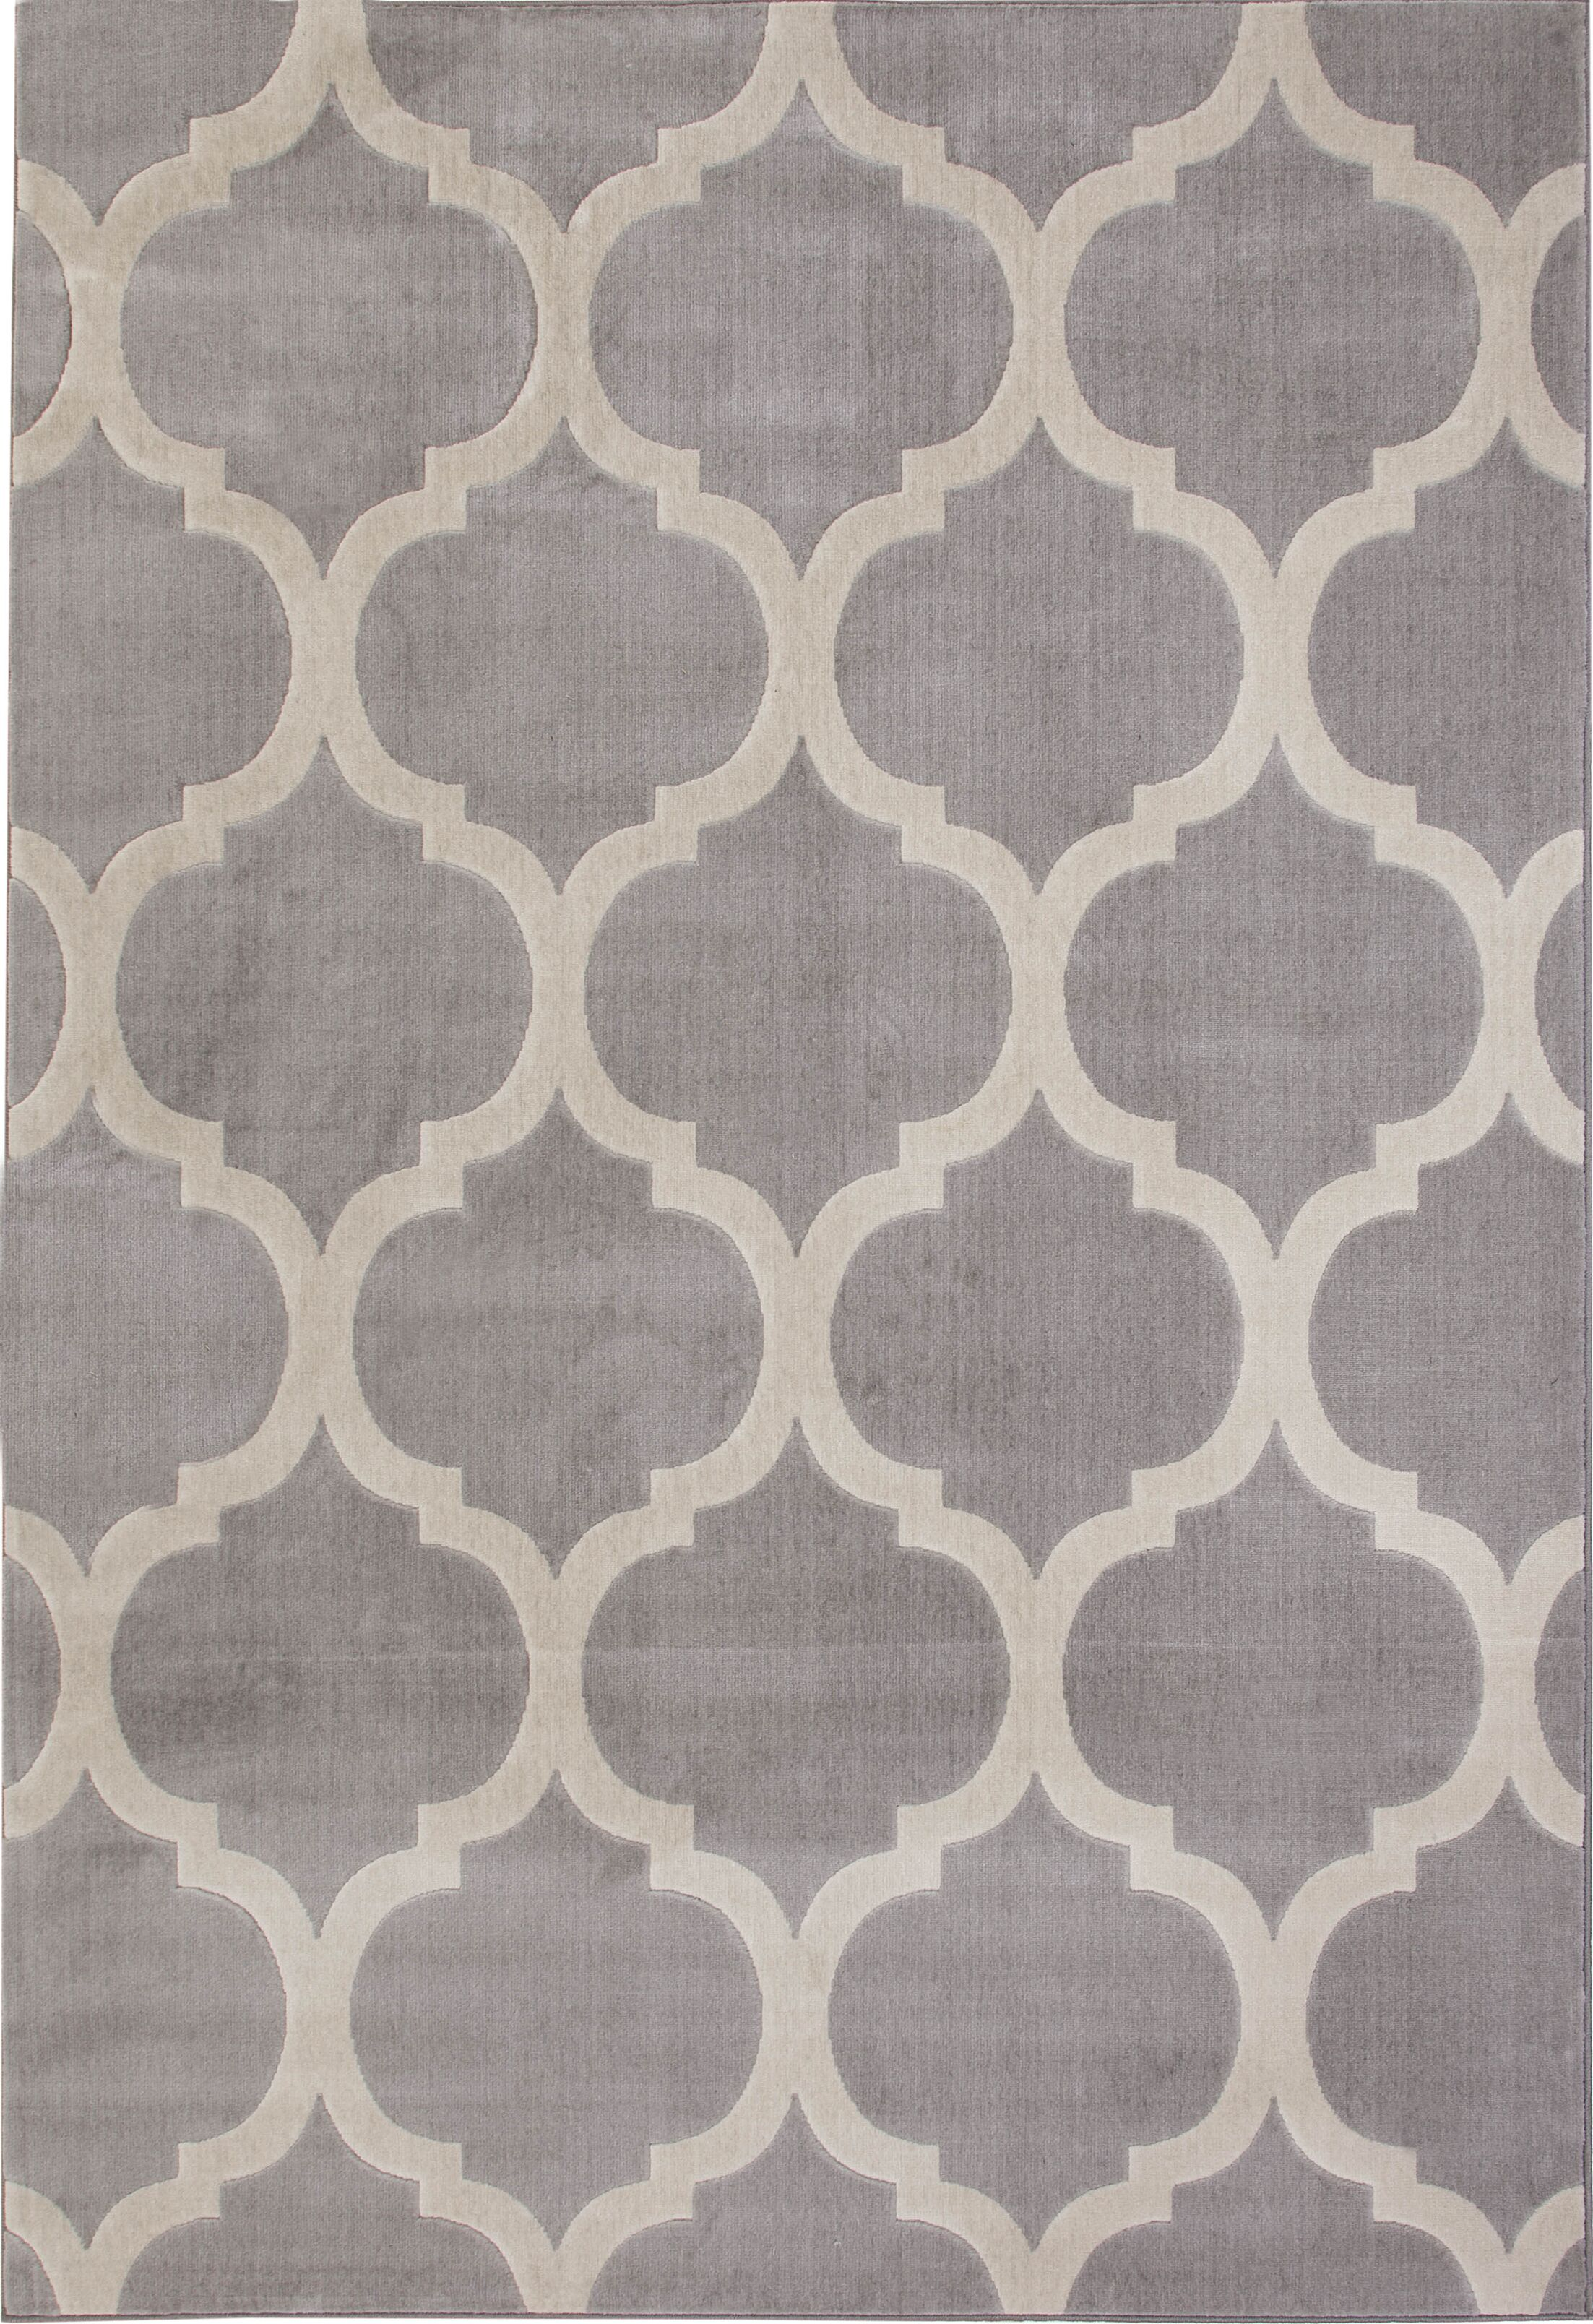 Estelle Gray/Ivory Area Rug Rug Size: 5'3